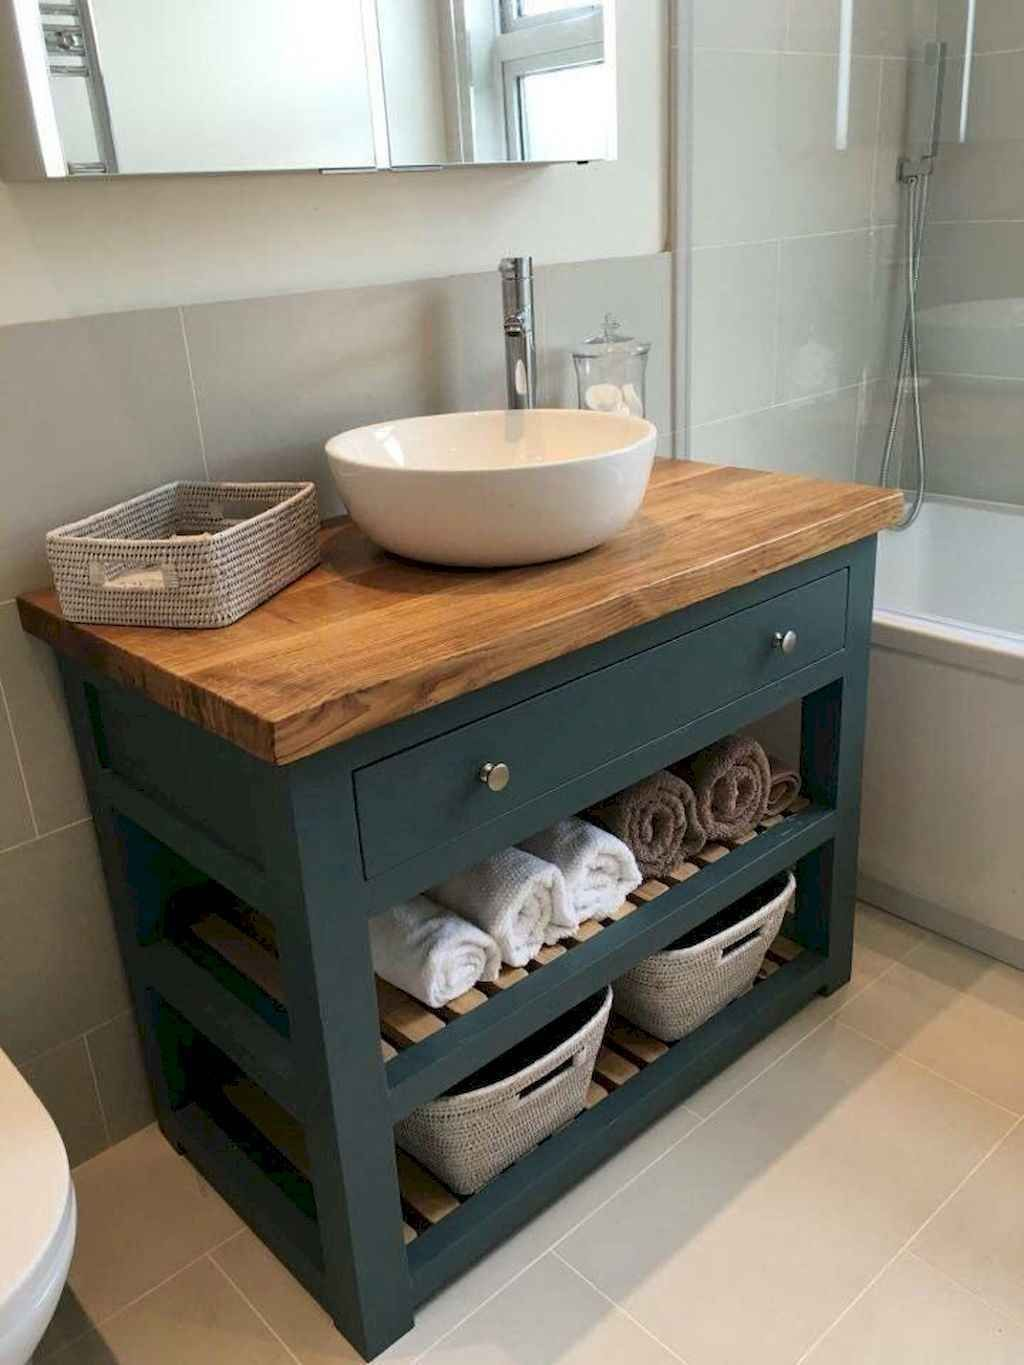 111 awesome small bathroom remodel ideas on a budget (30 images